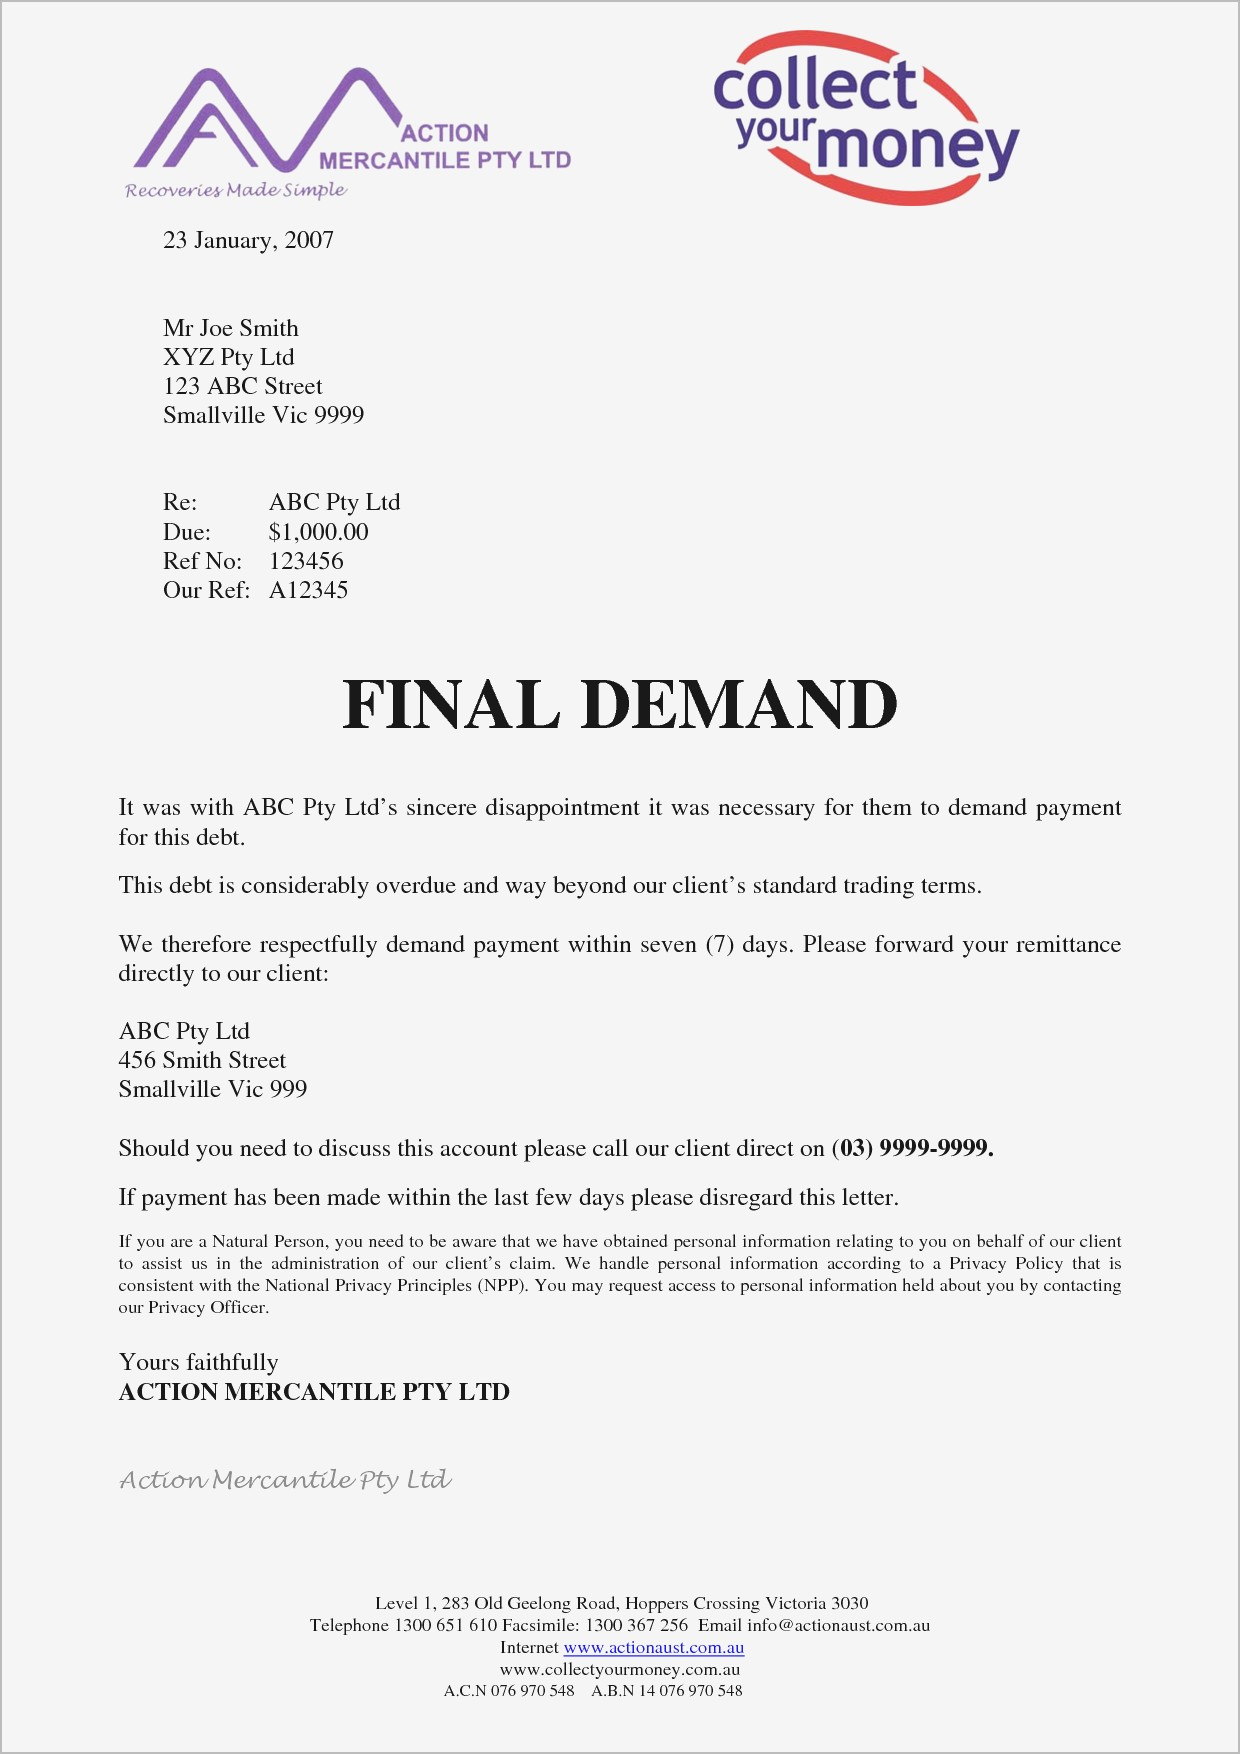 Final Demand for Payment Letter Template - Demand for Payment Letter Template Ideas